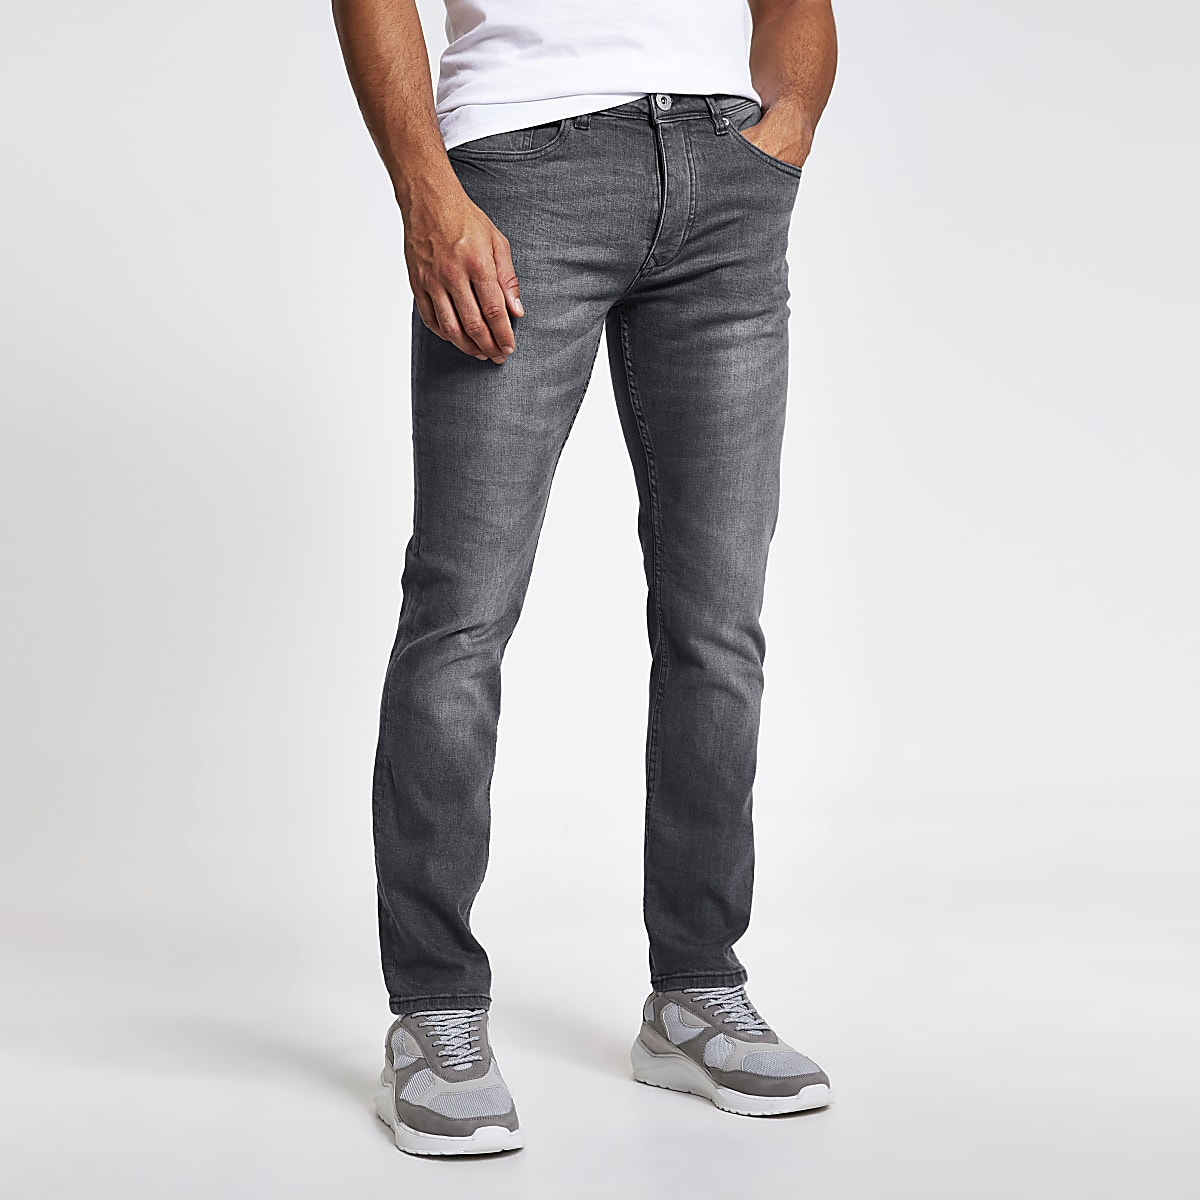 aab6b617 Grey wash fade Dylan slim fit jeans - Slim Jeans - Jeans - men